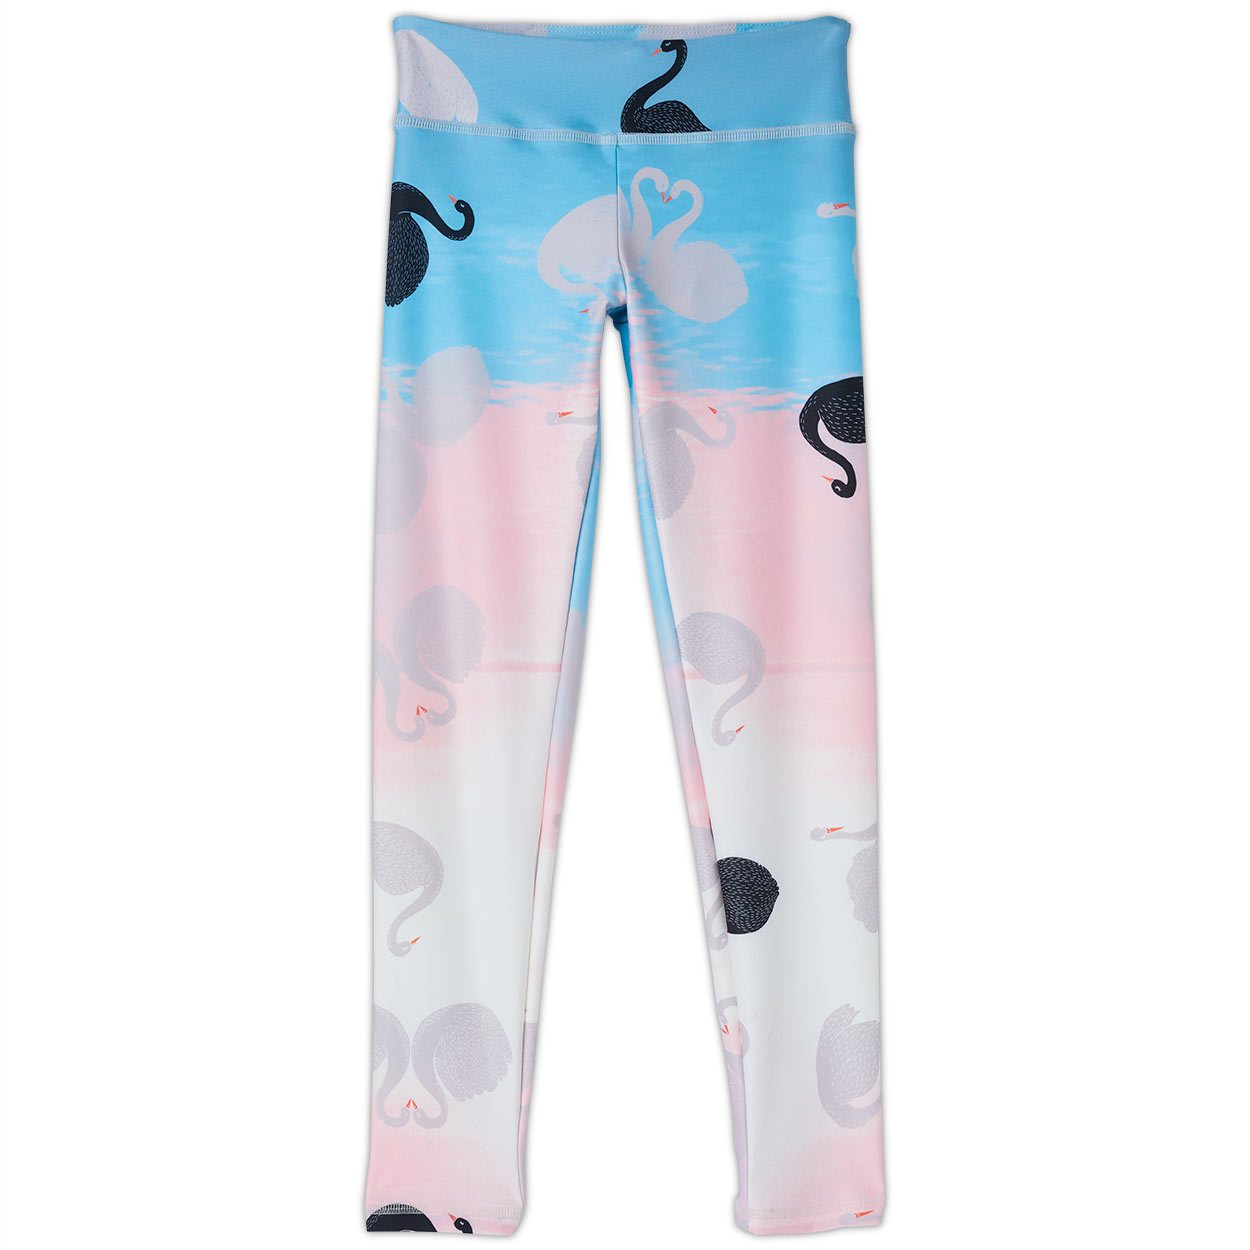 Swans Sunblocker Youth Leggings Upf50 Girls 6 12 White Aqua Peach Sunpoplife